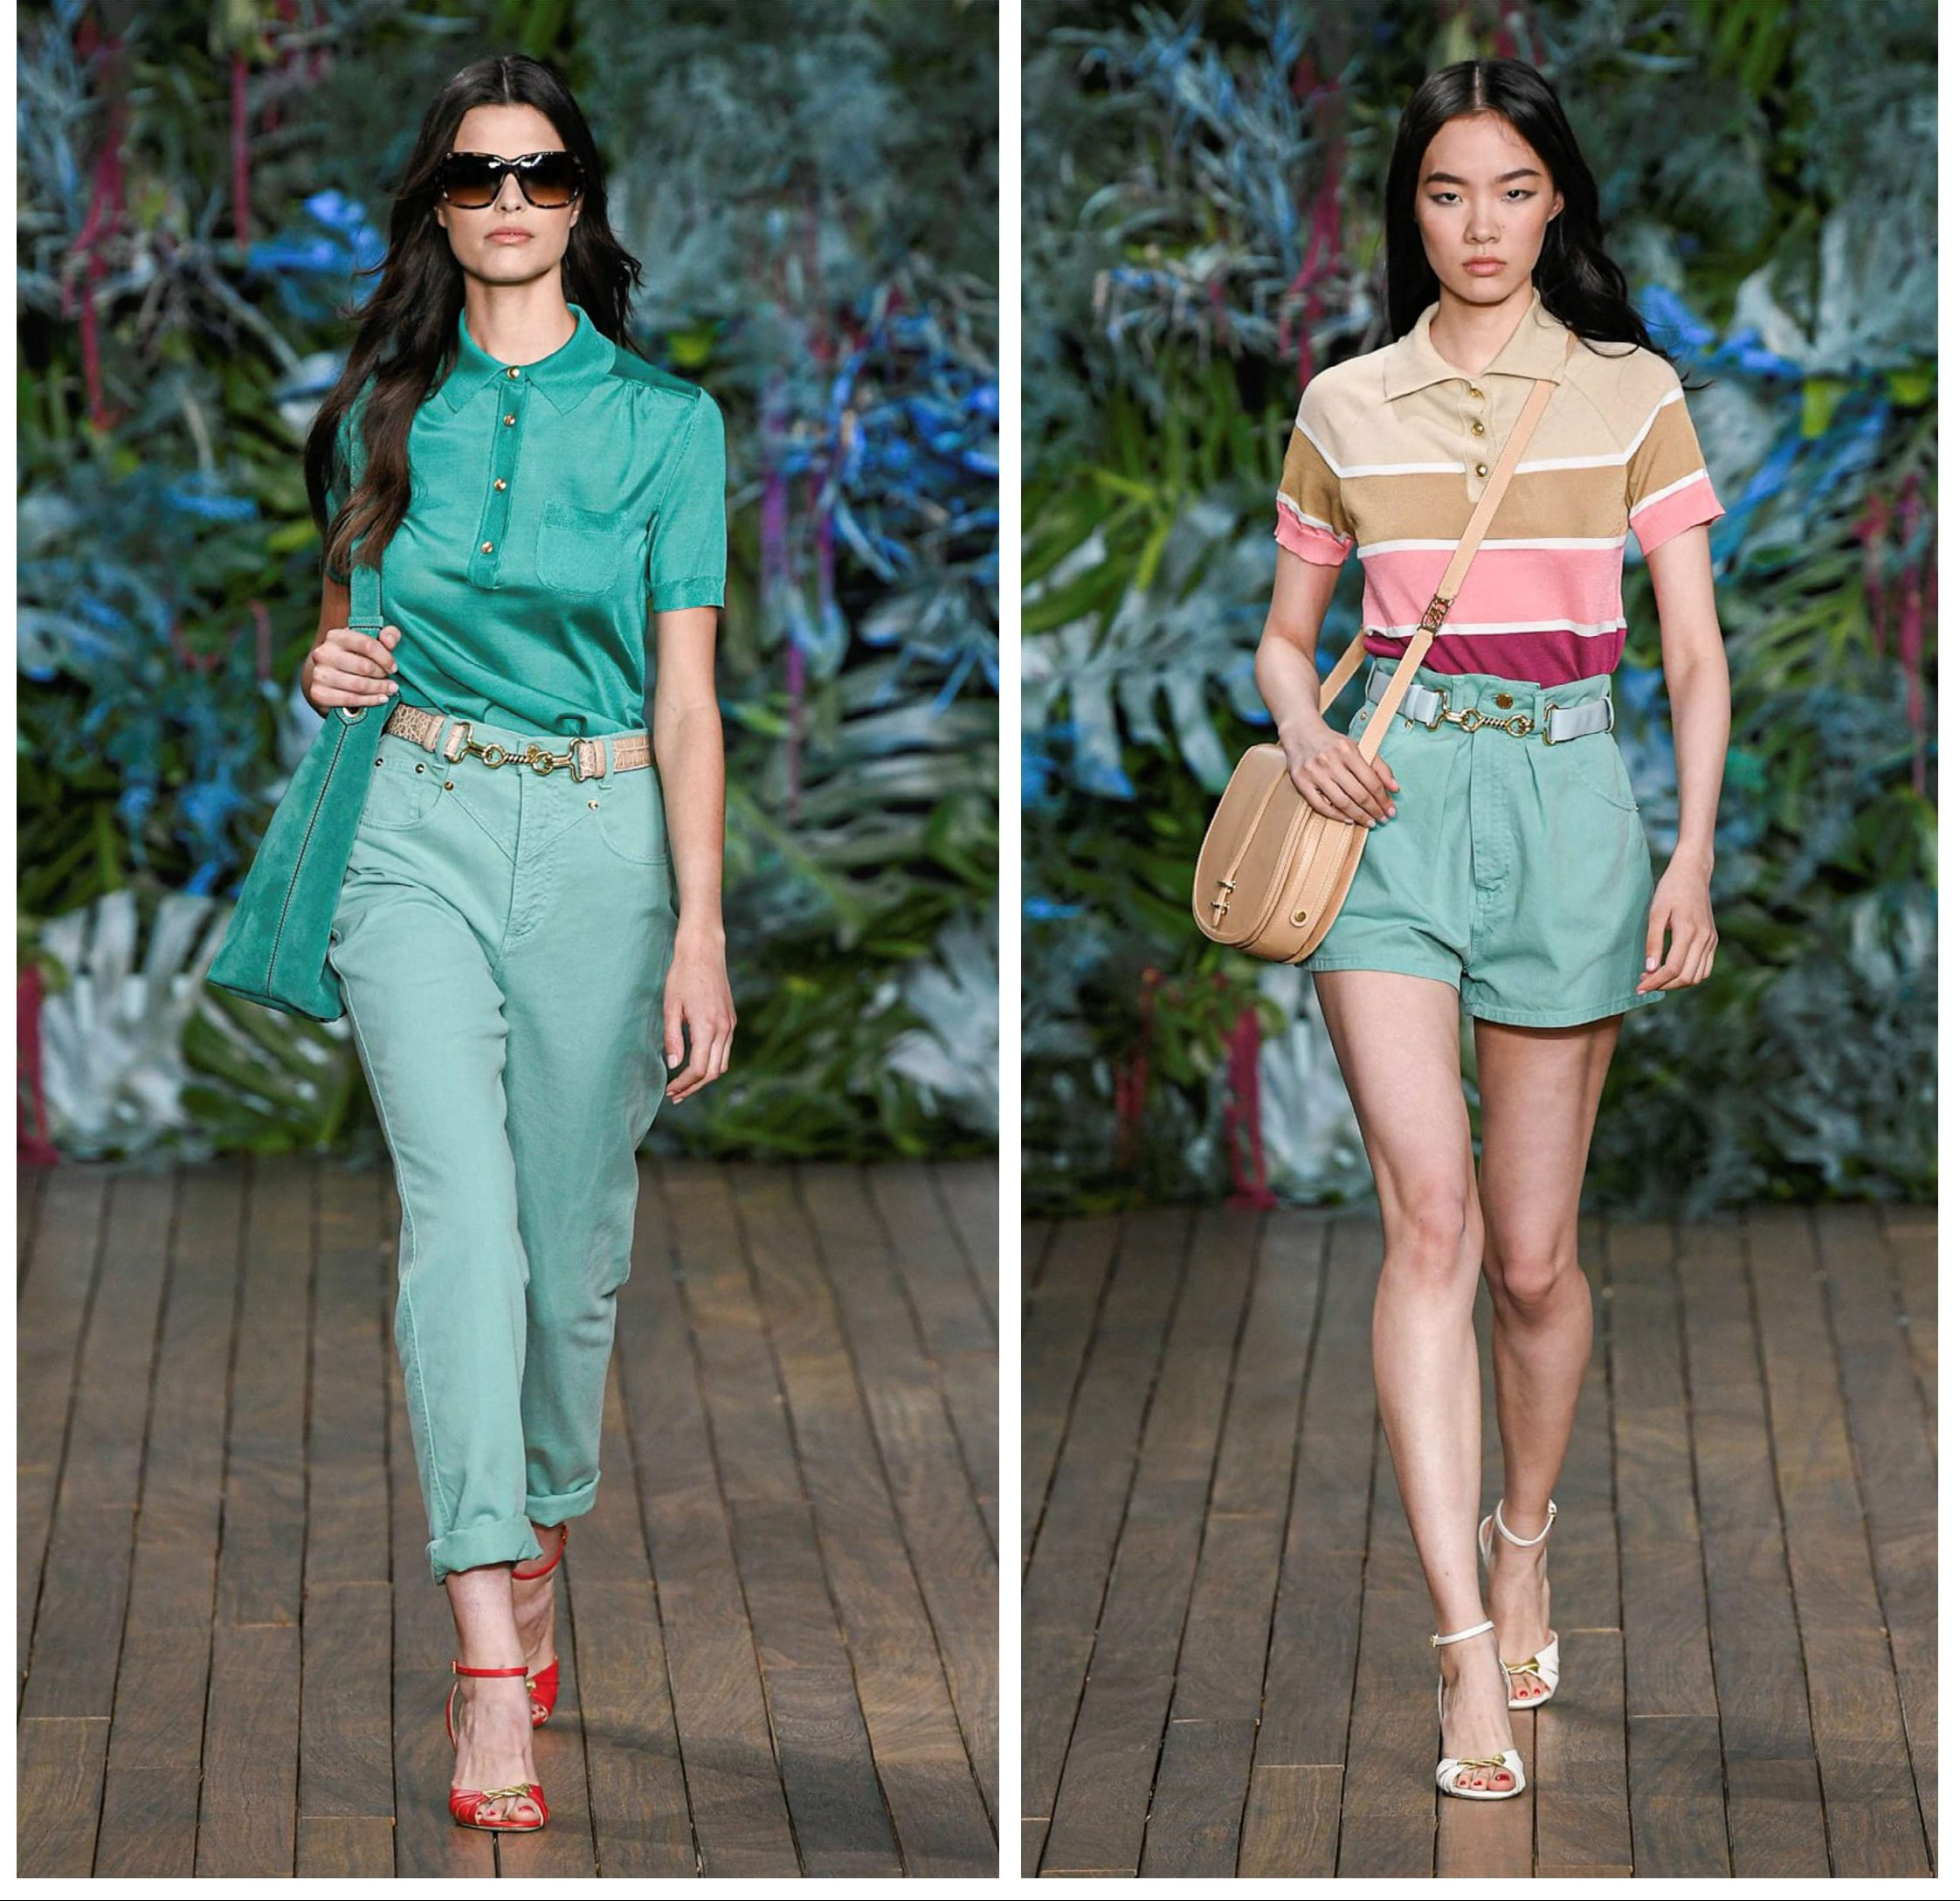 THE DESIRED SUMMER GETAWAY WITH ALBERTA FERRETTI RESORT 2020